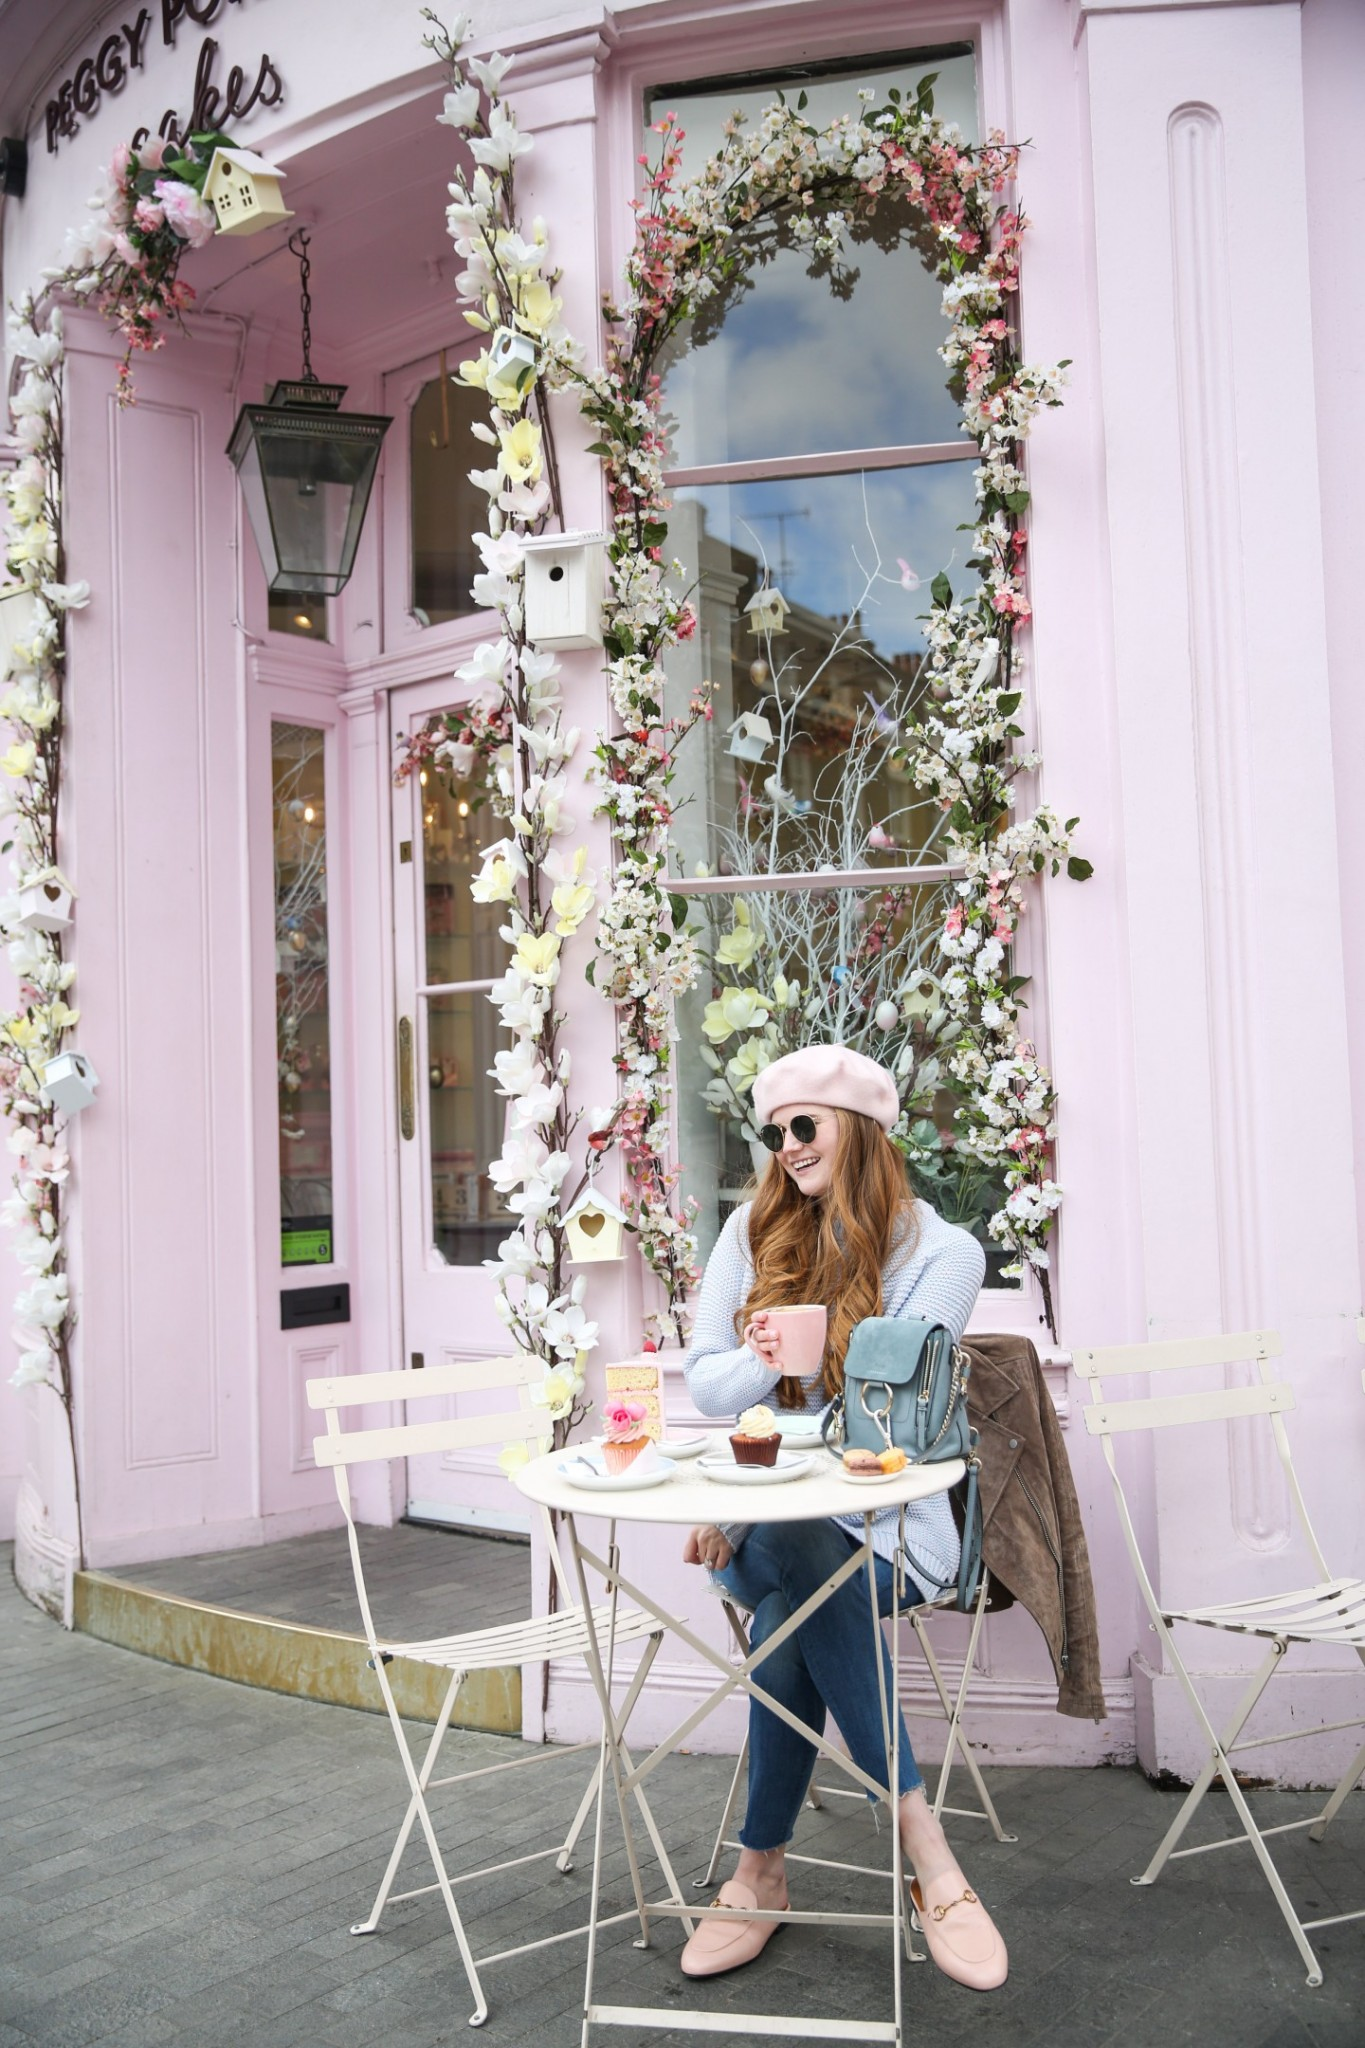 Lifestyle blogger Mollie Moore shares the top 5 most Instagram-worthy cafes in London |  | Top London and US life and style blogger, Mollie Moore shares her 2018 year in review: best IG cafes in London